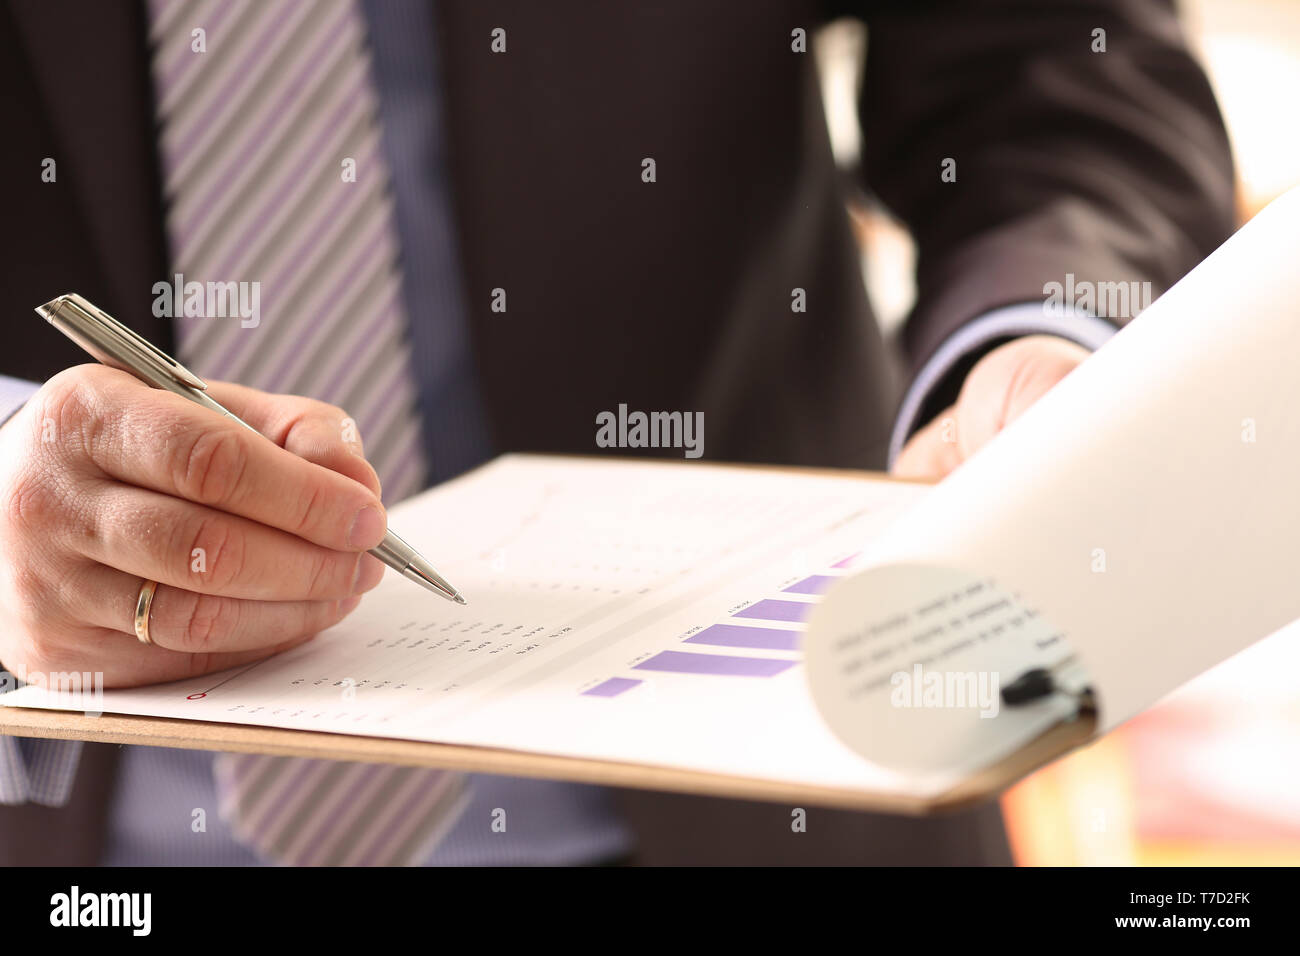 Financial Auditor Signing Calculating Document - Stock Image